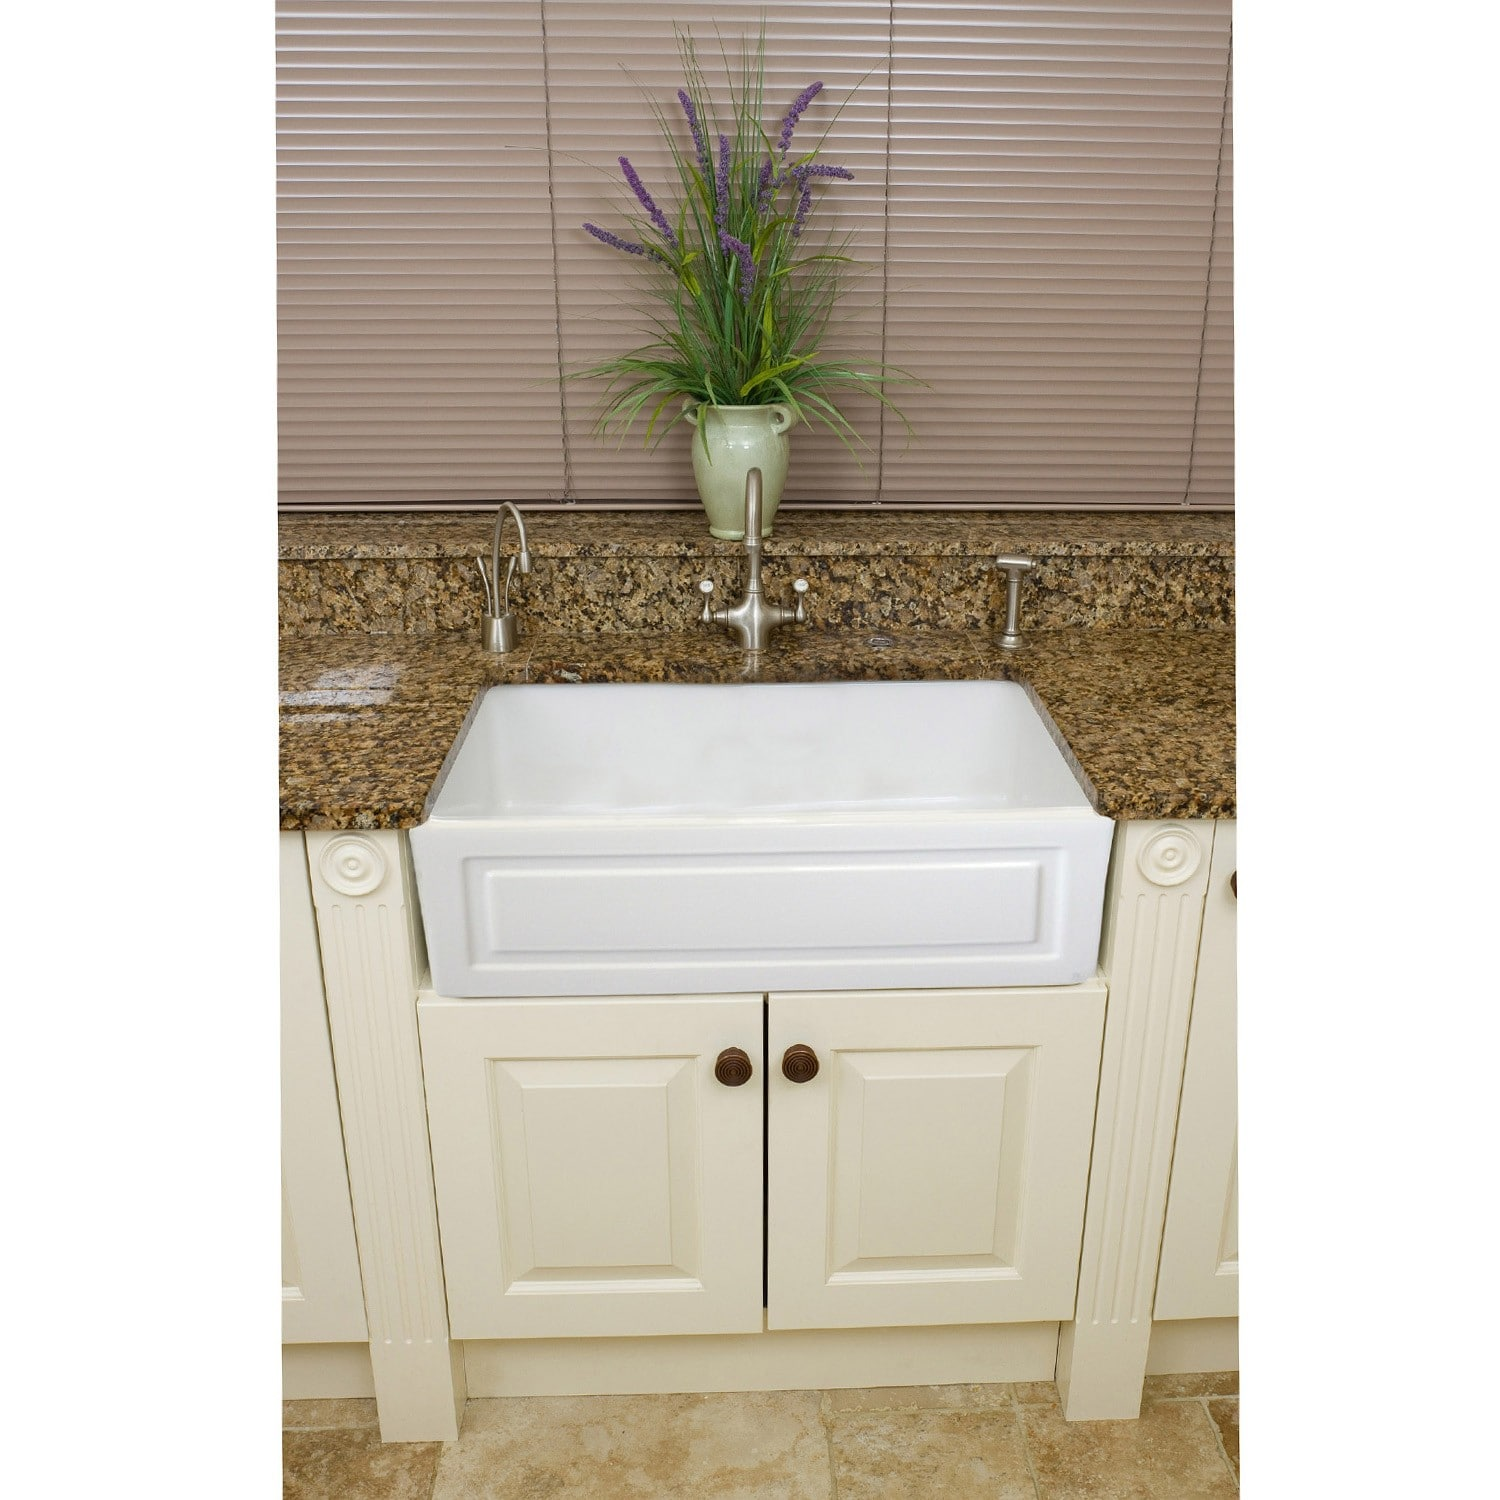 Overstock Farmhouse Sink Somette Fireclay French 29 Inch White Farmhouse Kitchen